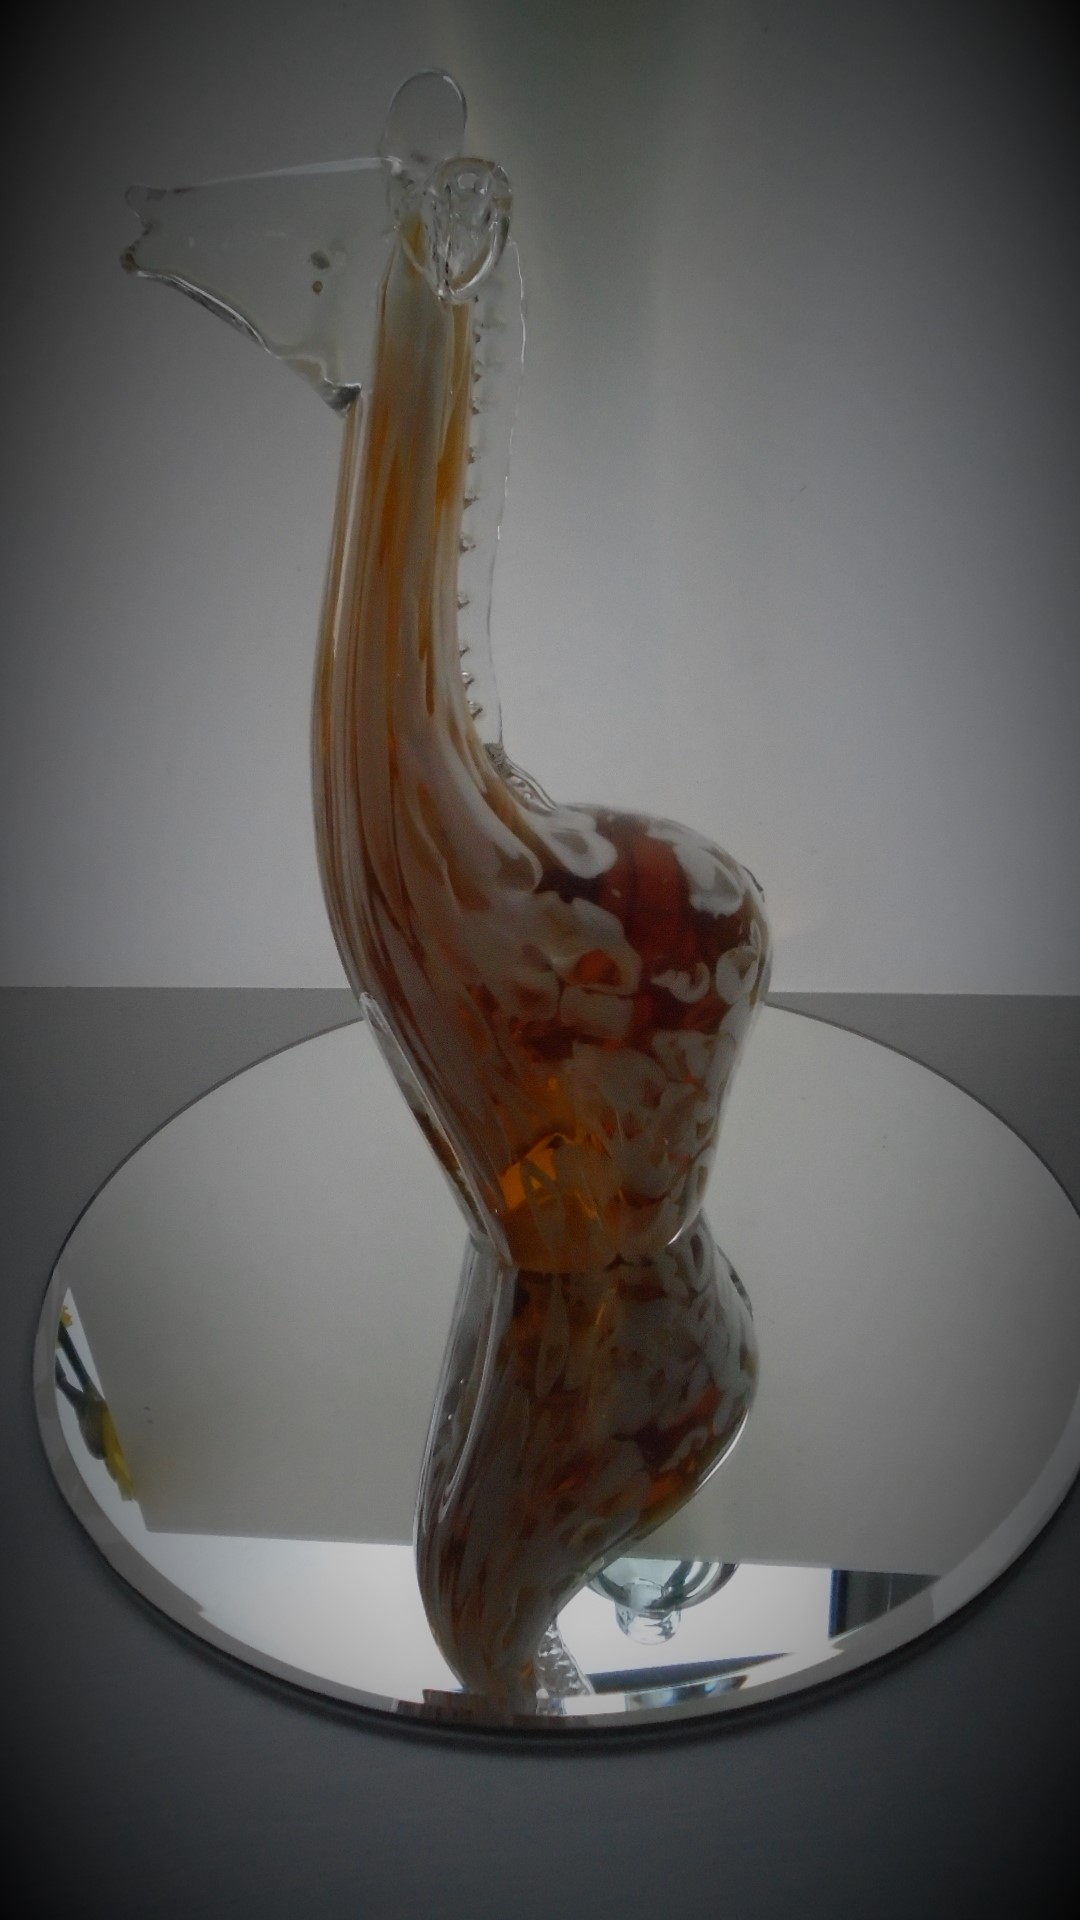 Offered for sale is a fine example of a vintage Murano Glass Giraffe figurine.